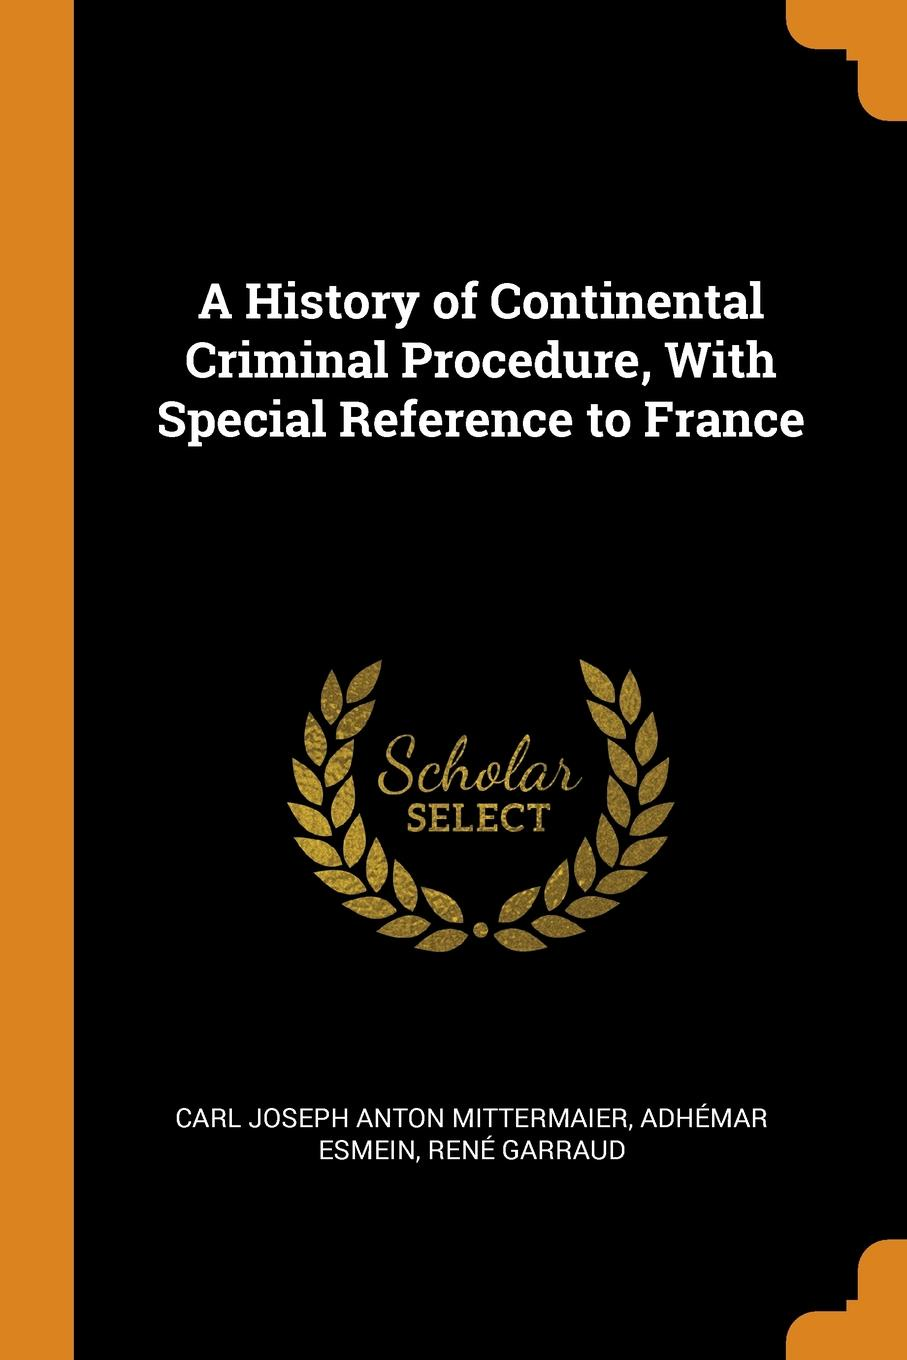 A History of Continental Criminal Procedure, With Special Reference to France. Carl Joseph Anton Mittermaier, Adh?mar Esmein, Ren? Garraud